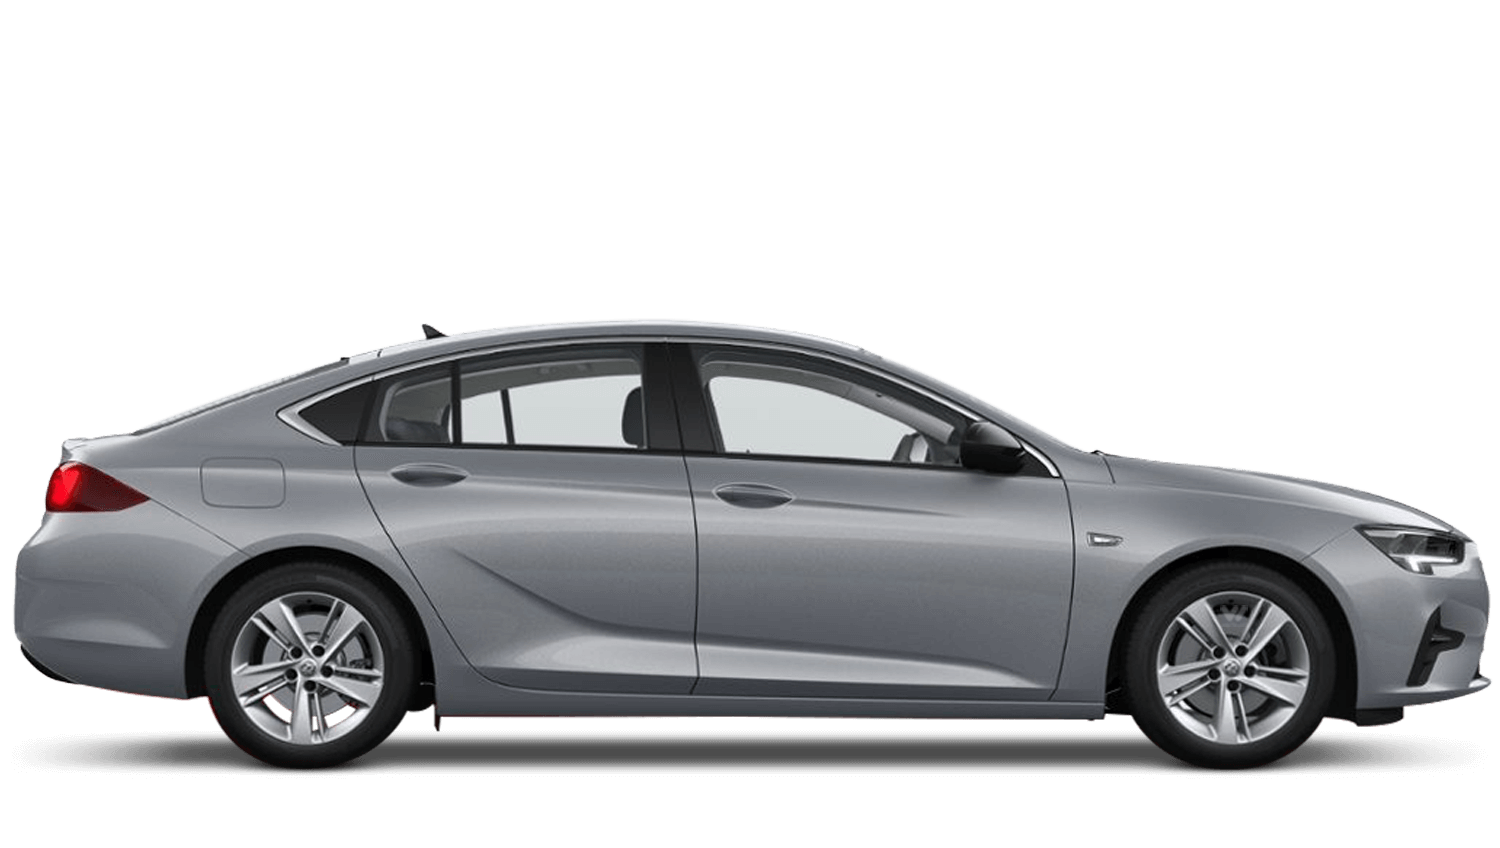 Satin Steel Grey (metallic) New Vauxhall Insignia